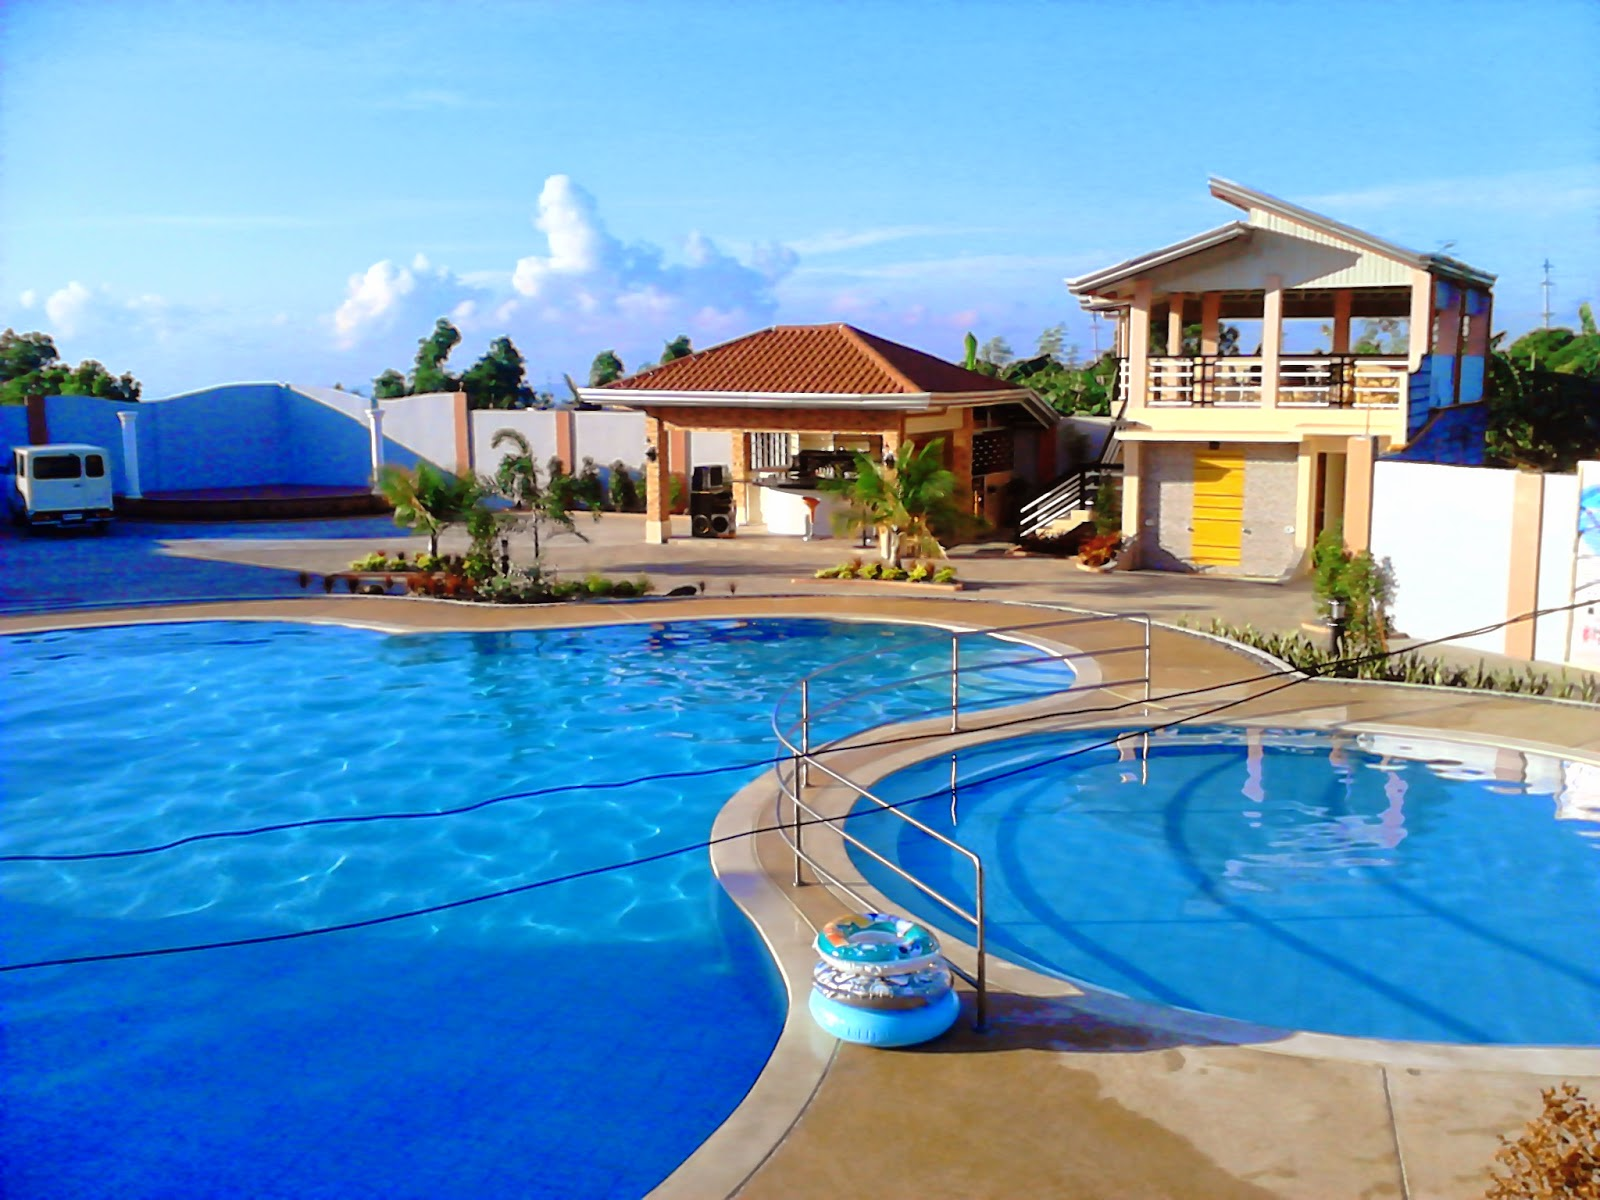 Swimconsulting Mt Tarak A Promising Resort Restaurant And Guest House In Mariveles Bataan